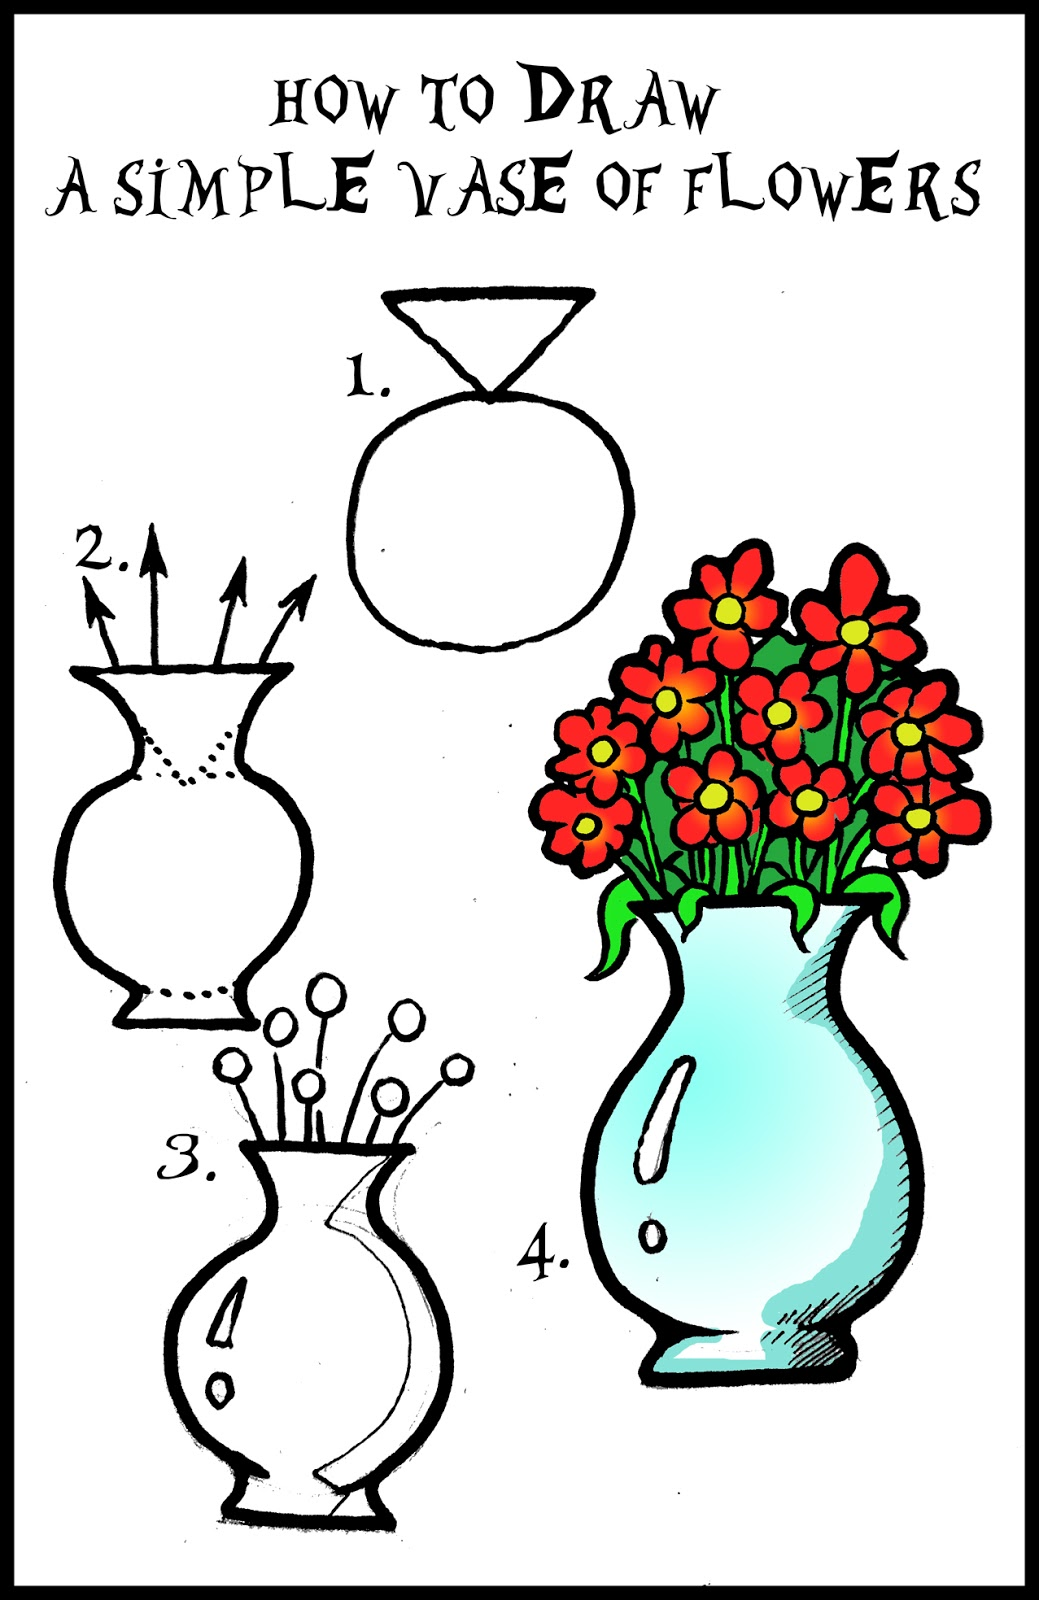 daryl hobson artwork how to draw a vase of flowers step by step. Black Bedroom Furniture Sets. Home Design Ideas